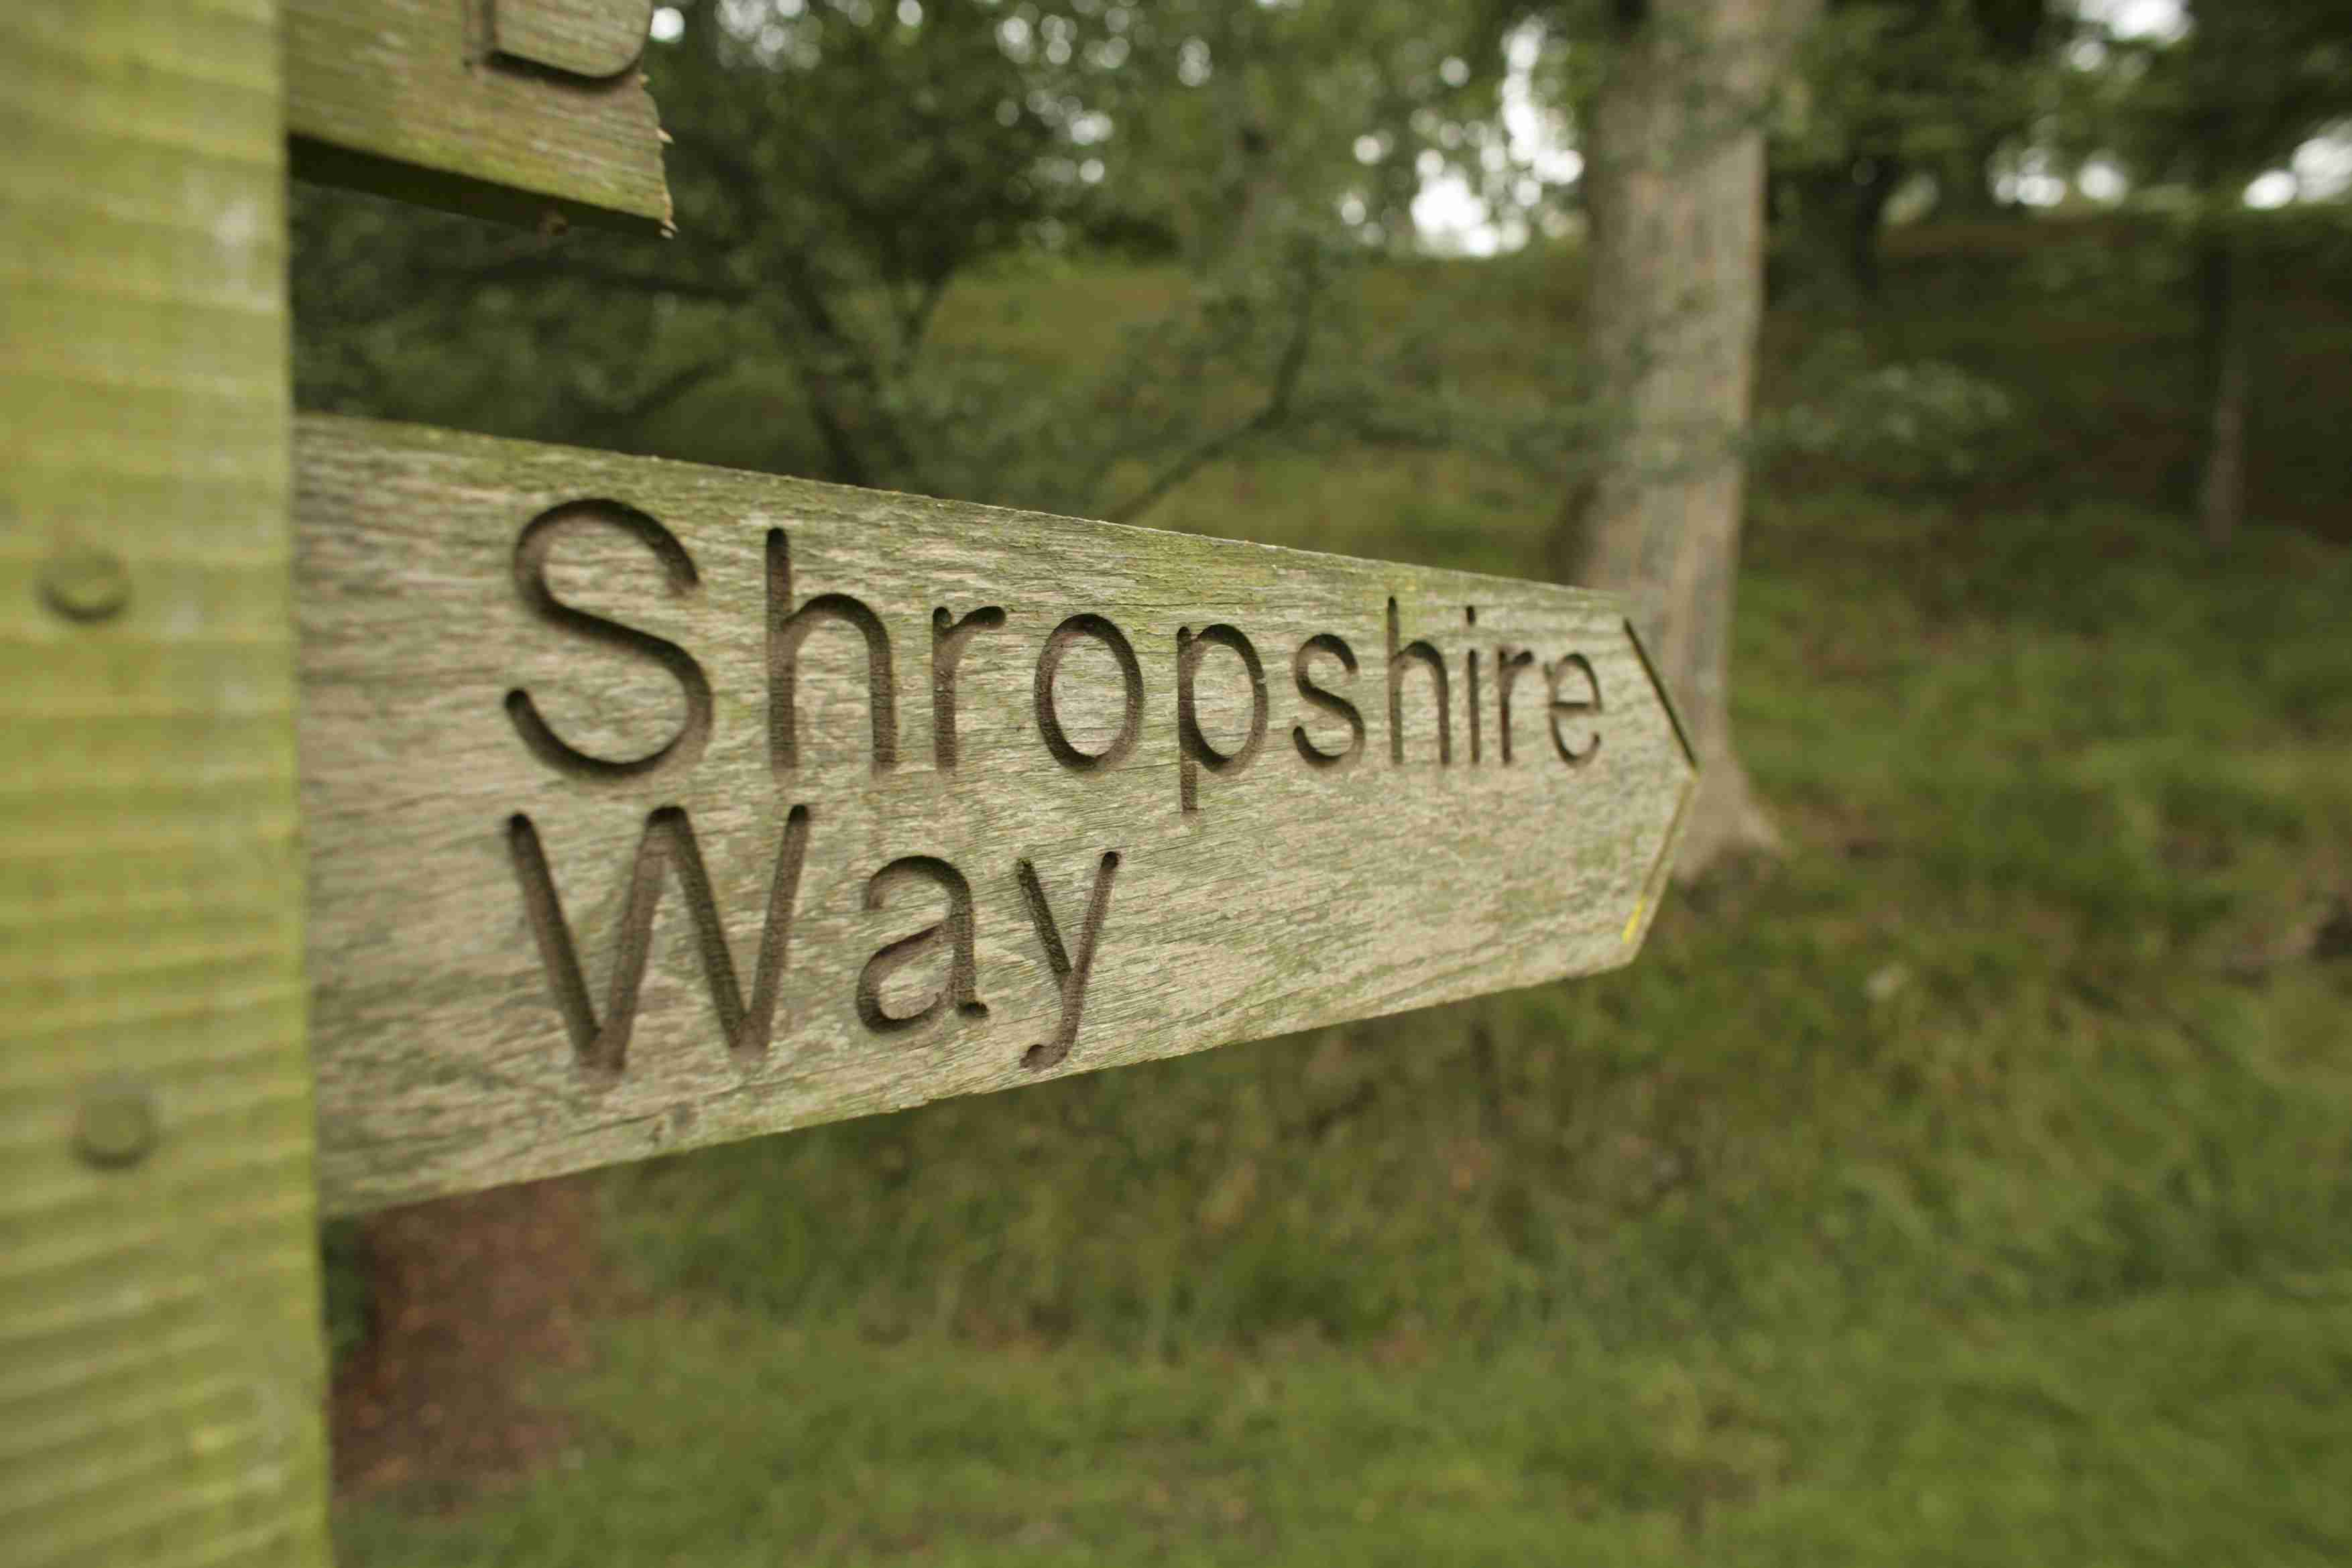 Signpost for The Shropshire Way